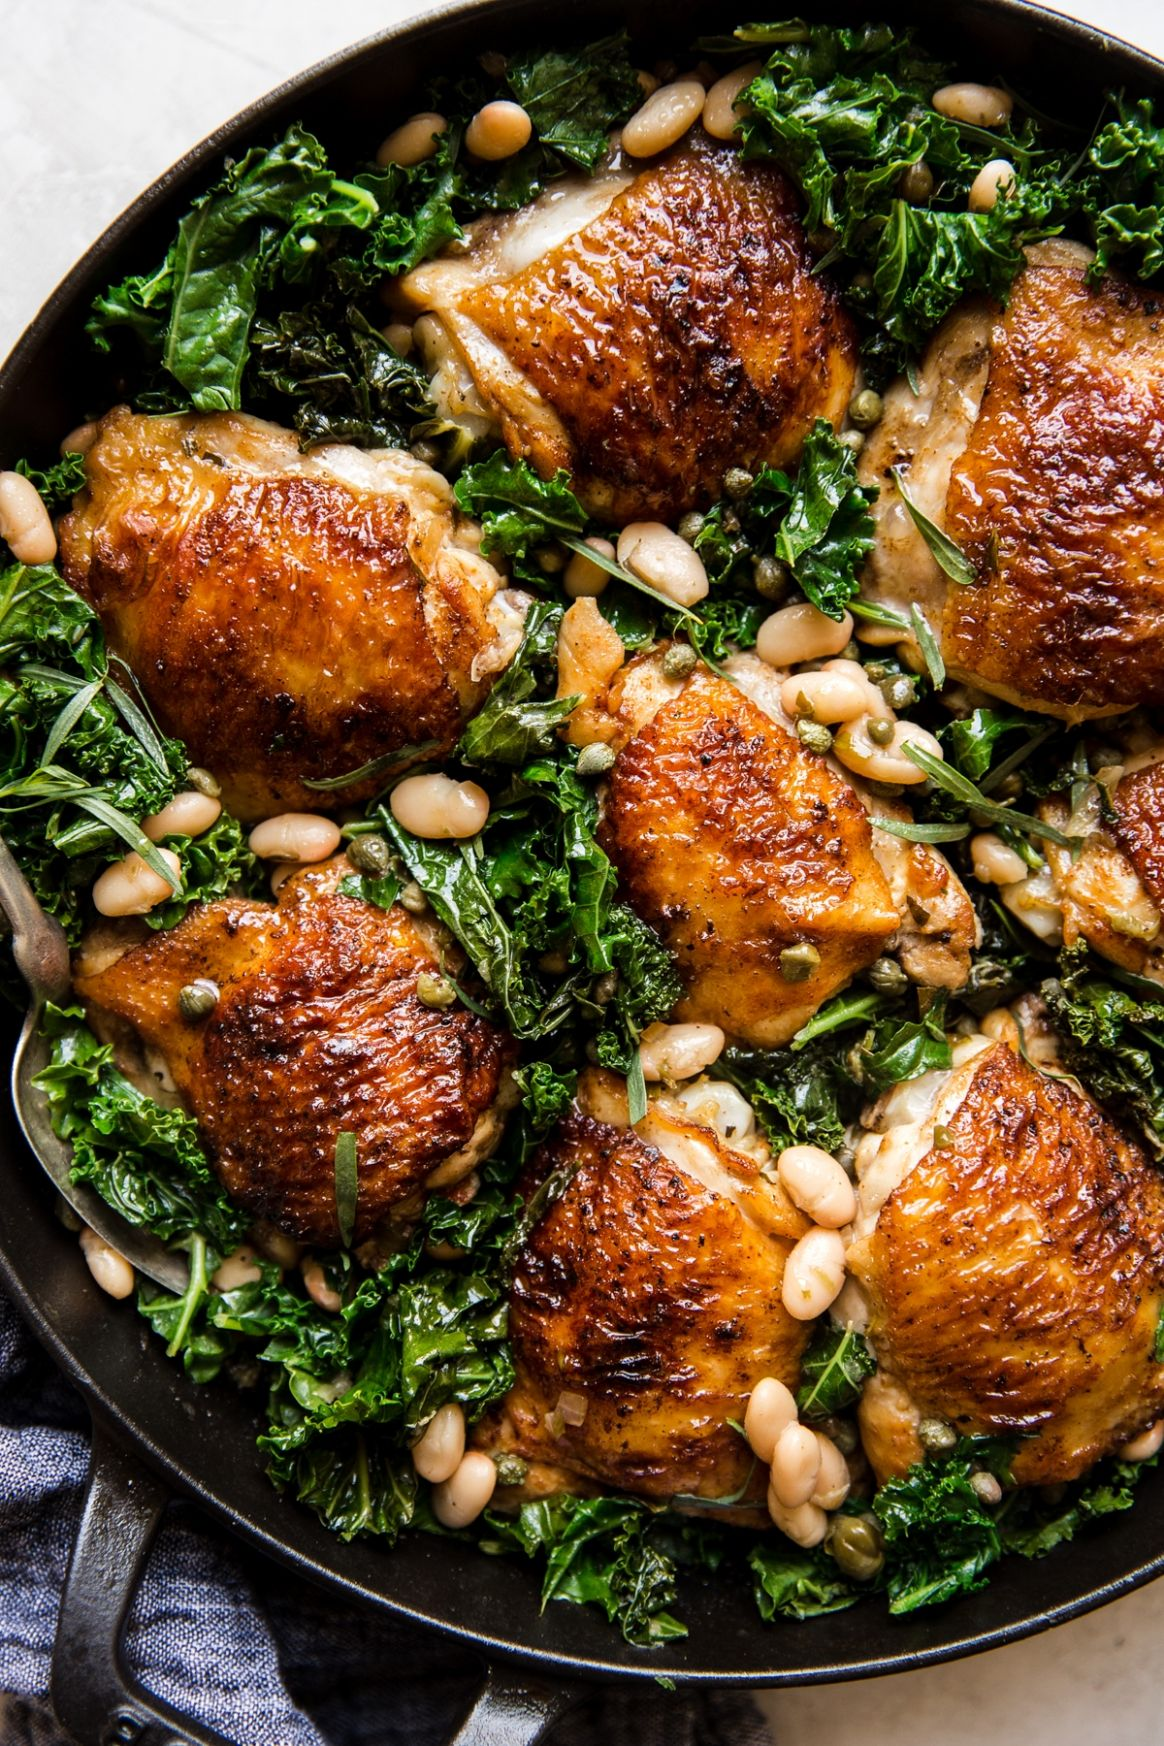 One-Pot Braised Chicken with Kale and White Beans